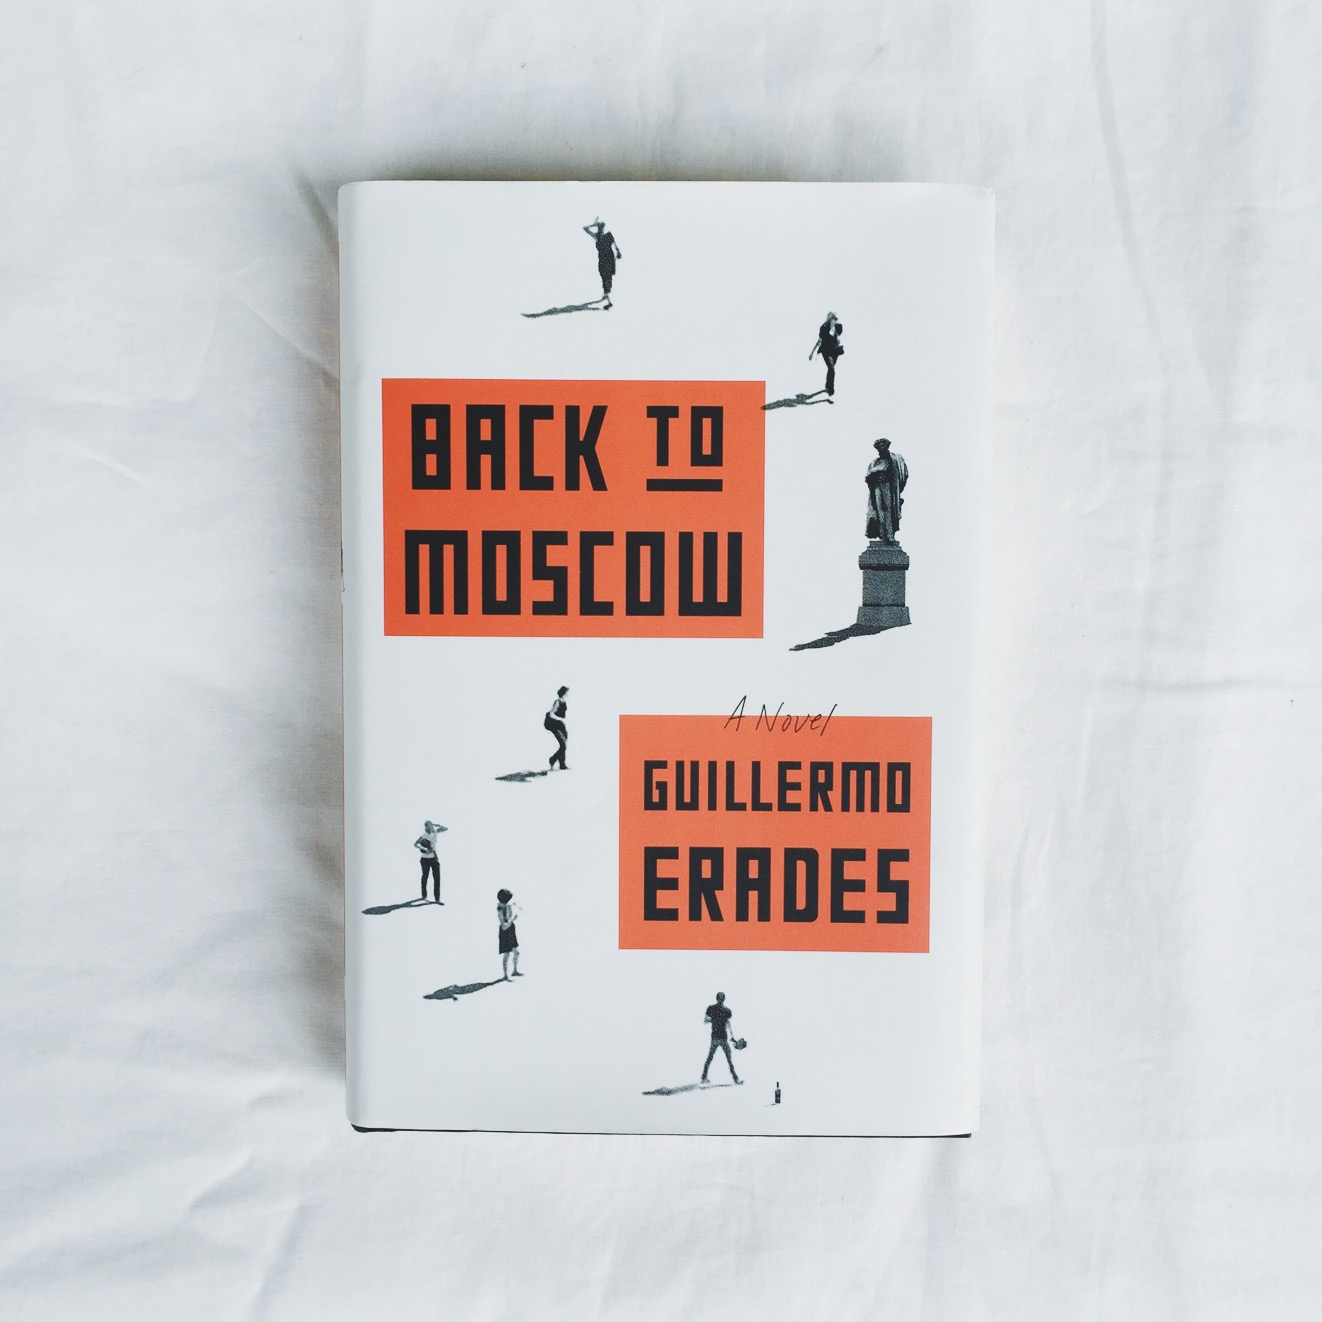 24/ Back to Moscow — Guillermo Erades